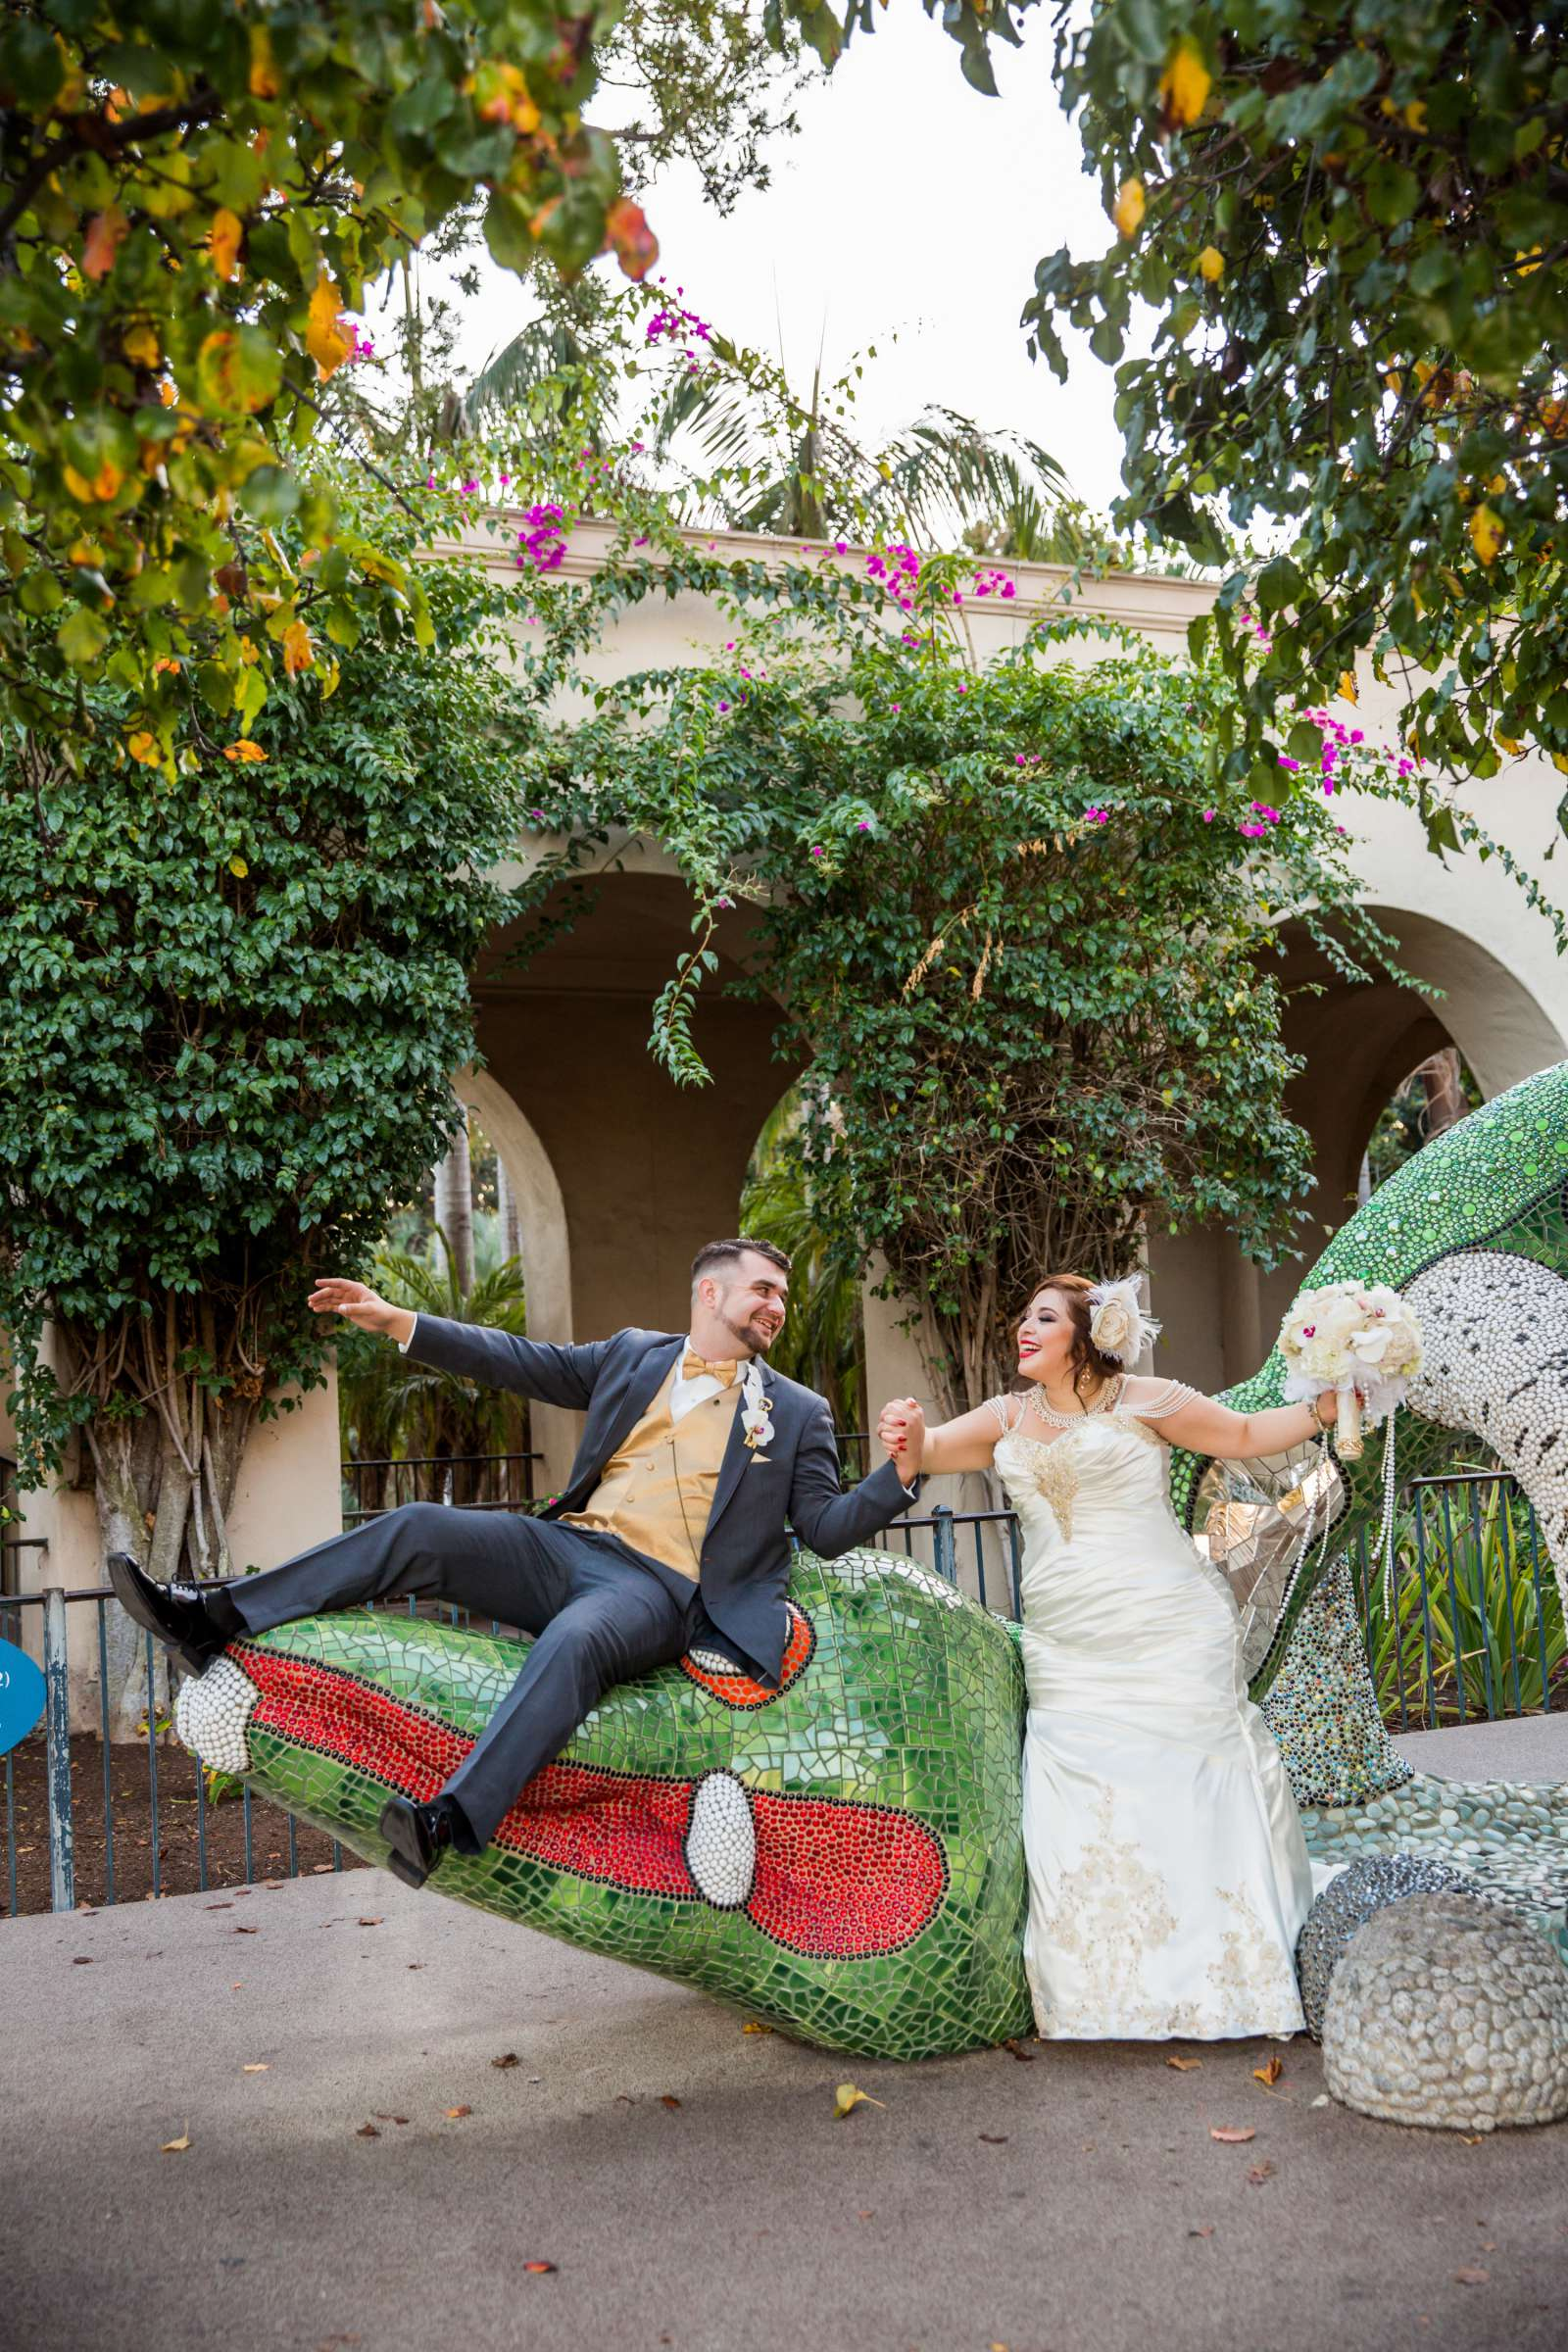 The Prado Wedding coordinated by Breezy Day Weddings, Aalis and Michael Wedding Photo #21 by True Photography